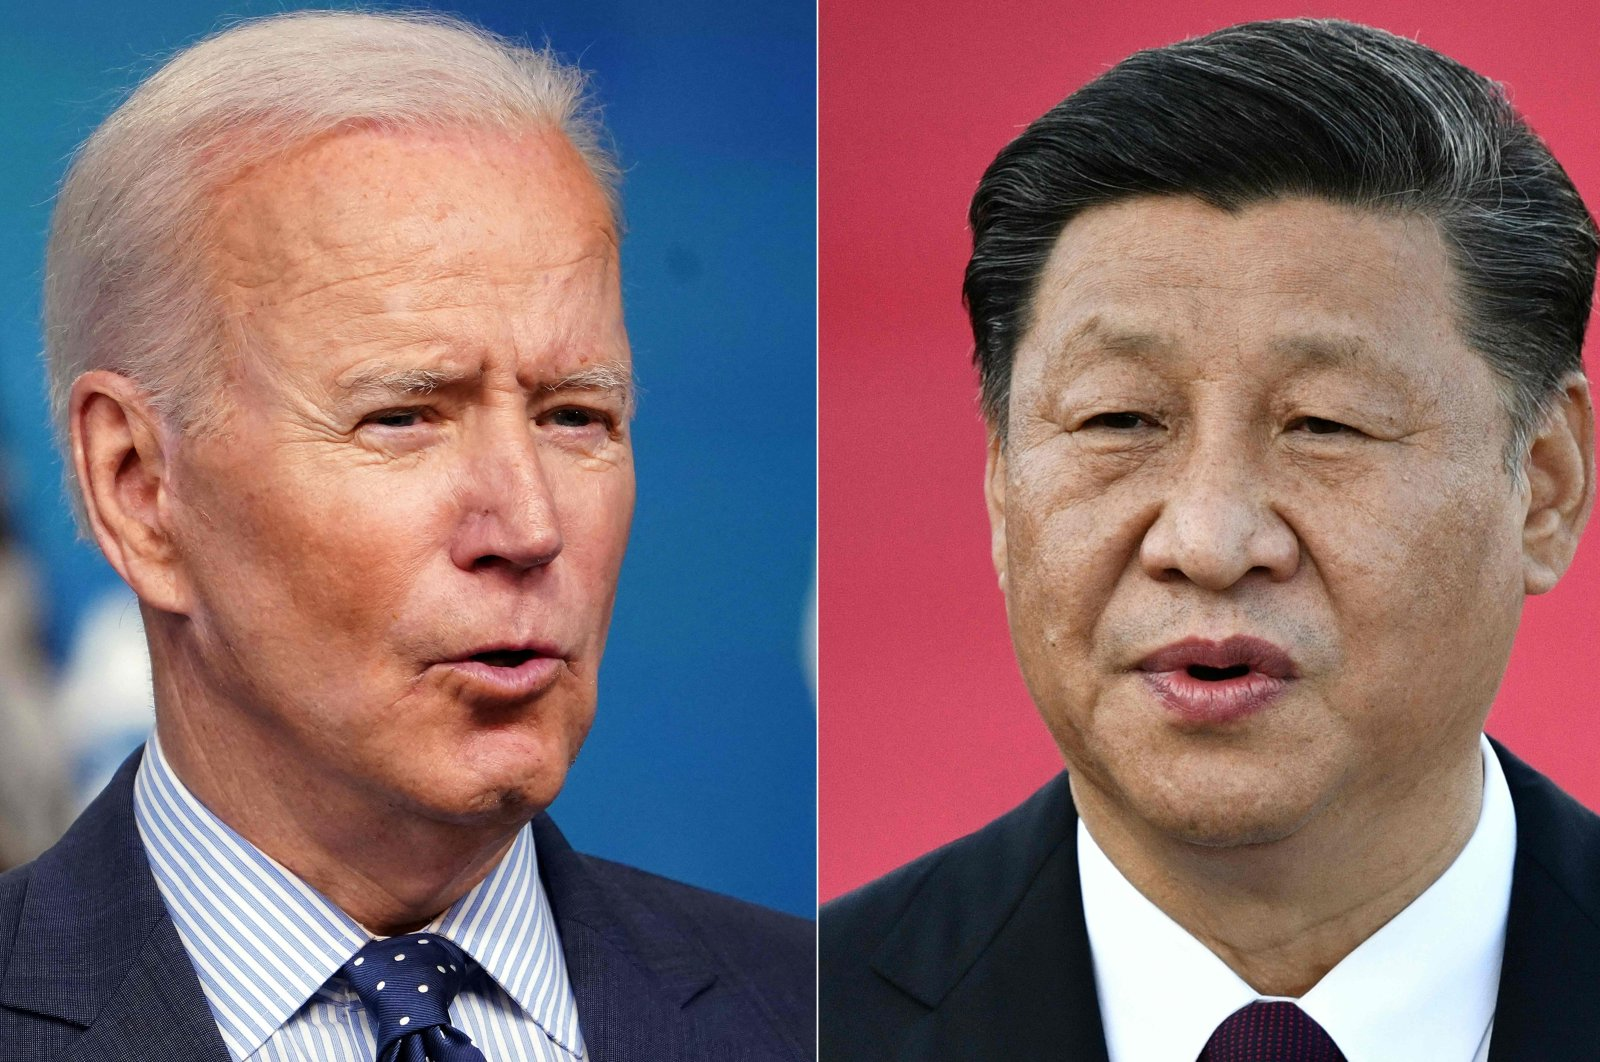 This combination of file pictures created on June 8, 2021, shows U.S. President Joe Biden (L) speaking at the Eisenhower Executive Office Building in Washington, D.C. on June 2, 2021; and Chinese President Xi Jinping speaking upon arrival at Macau's international airport on Dec. 18, 2019. (AFP Photo)